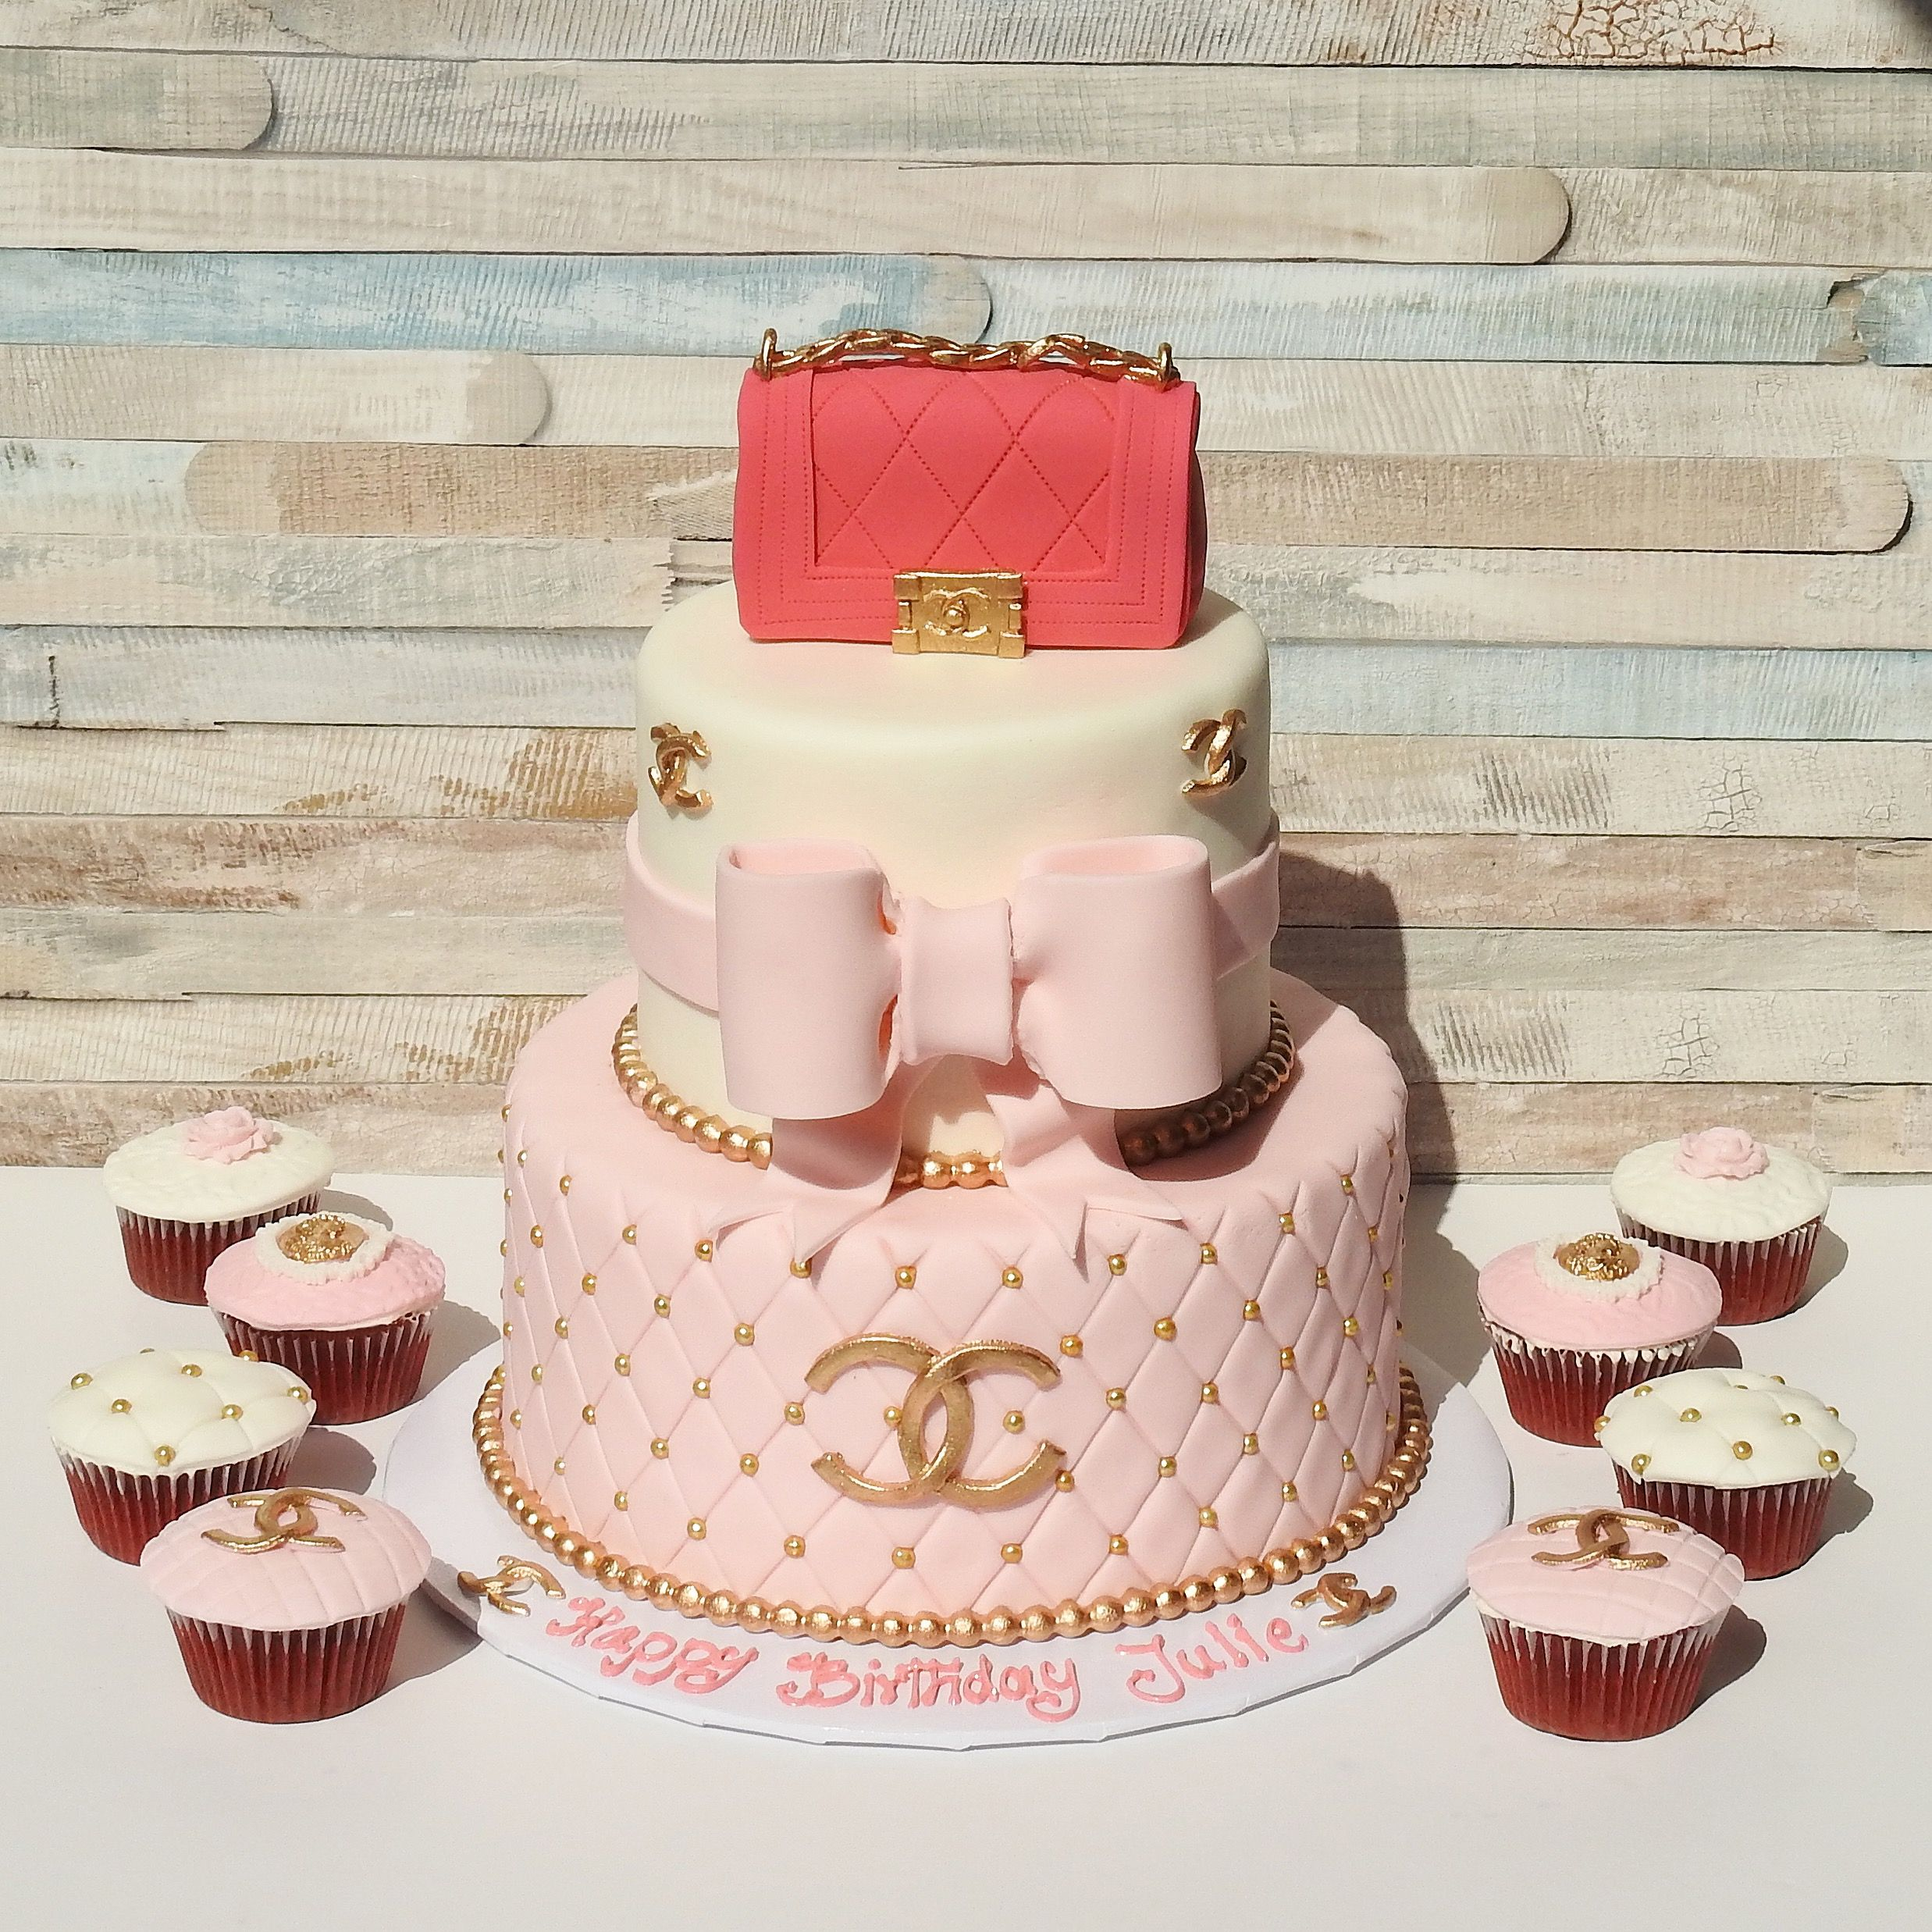 Chanel birthday cake call me for your next event 949545